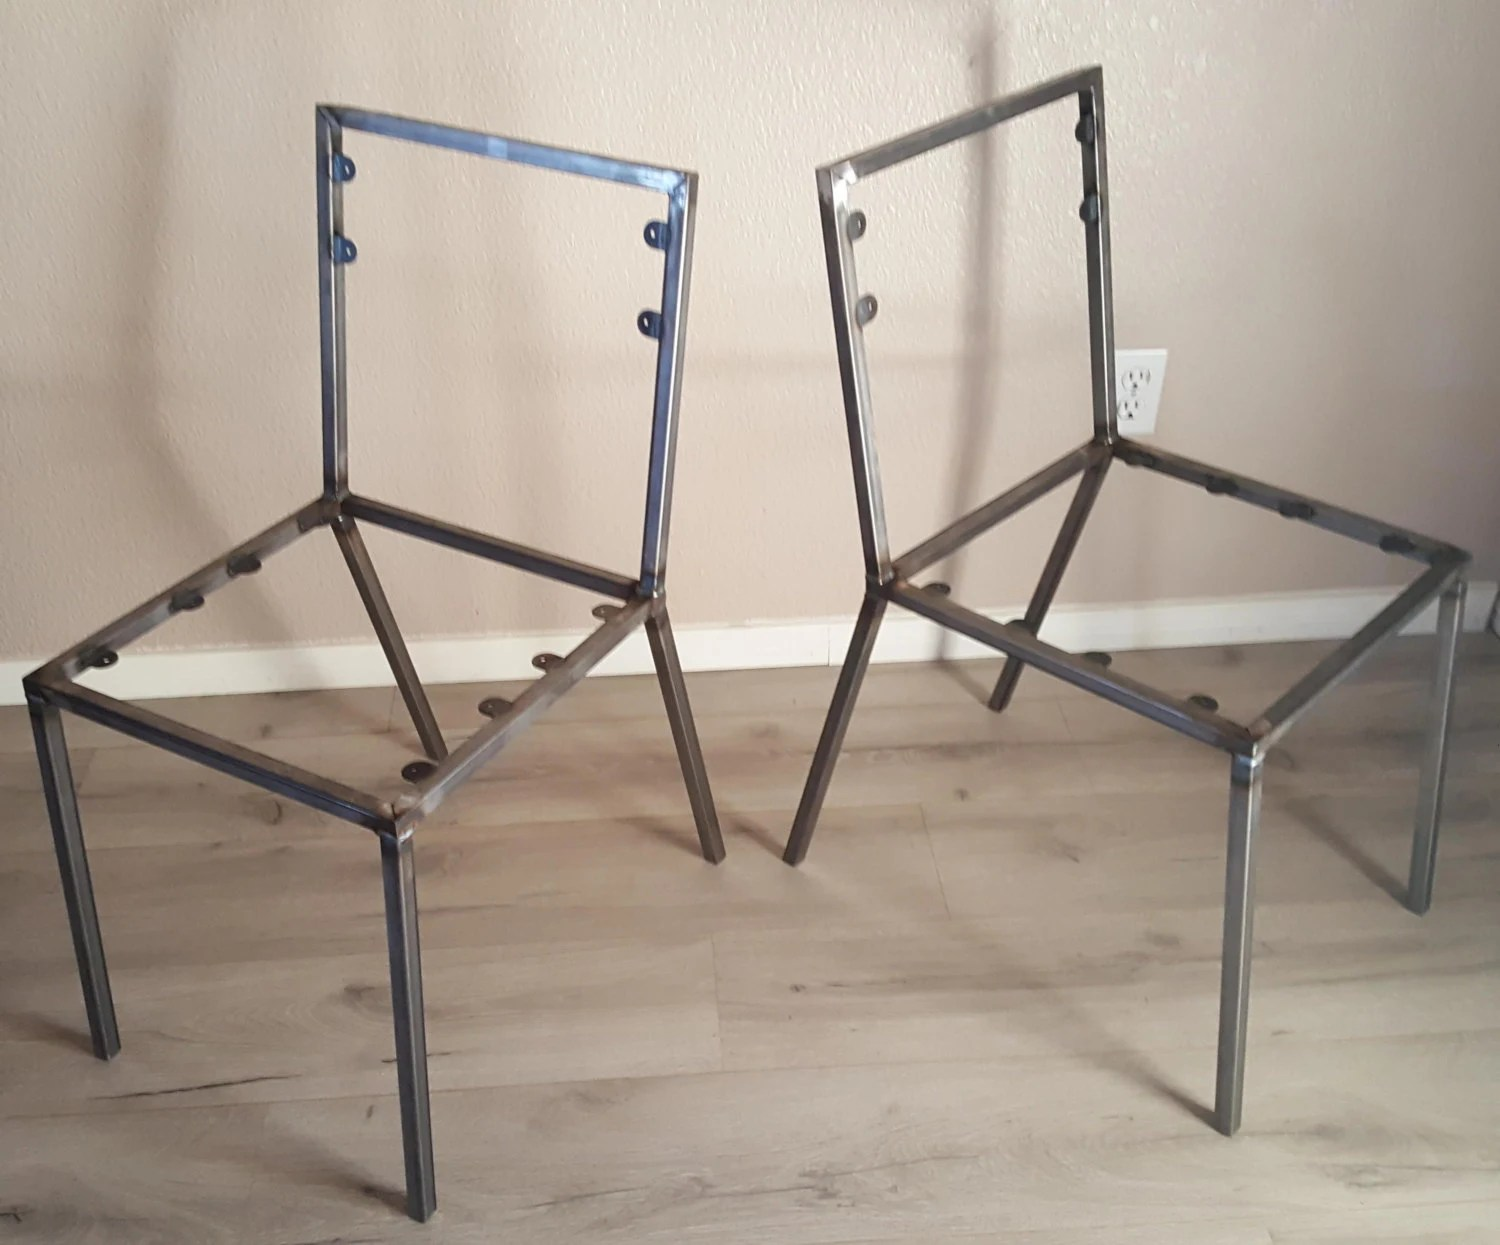 metal frame chairs how to make a rocking chair not rock steel dining set of 2 frames diy create your